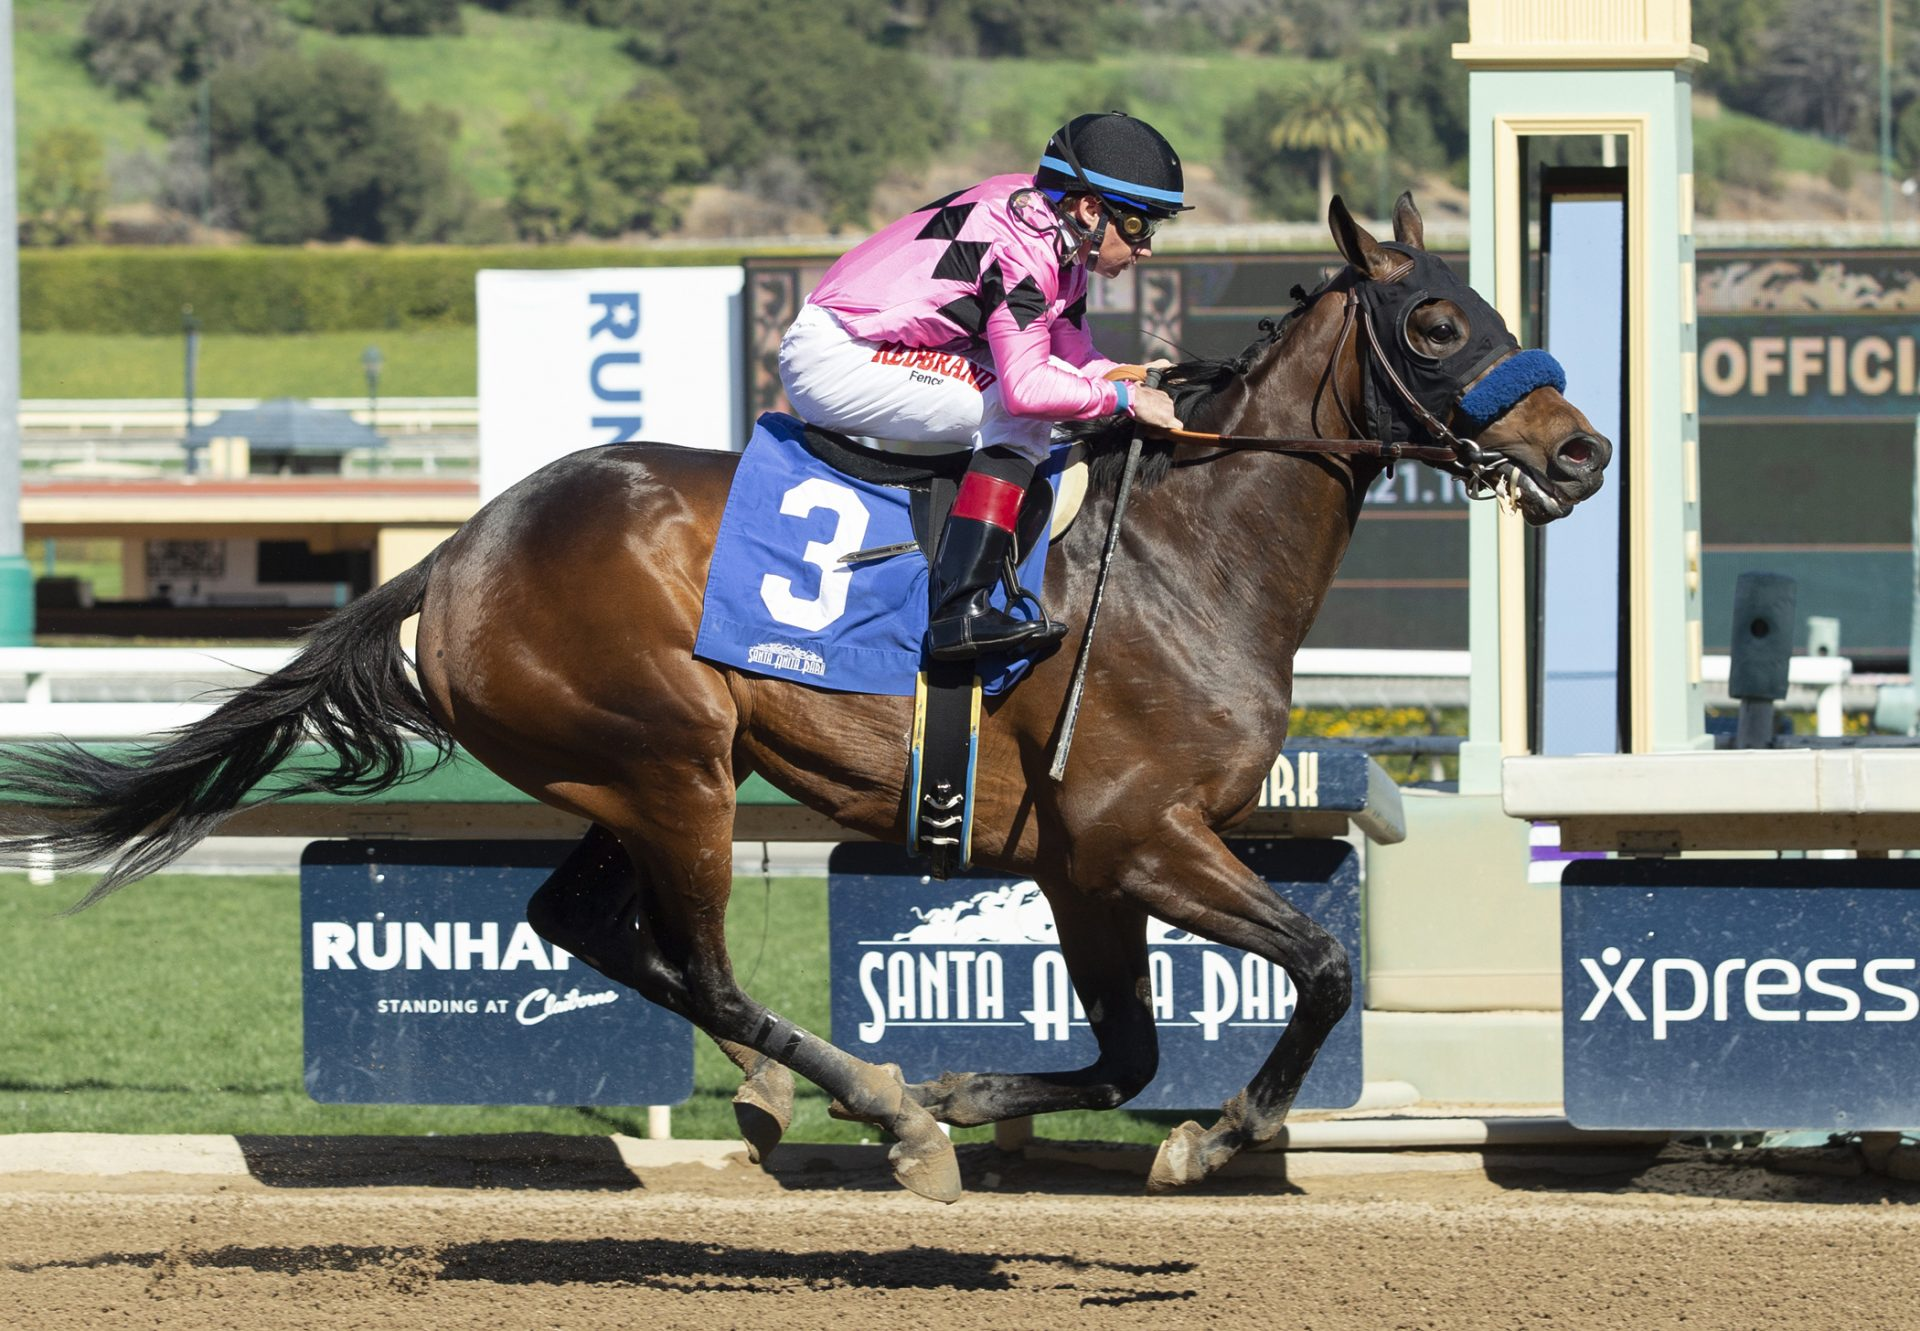 West Sider Uncle Mo Breaking Santa Anita Maiden